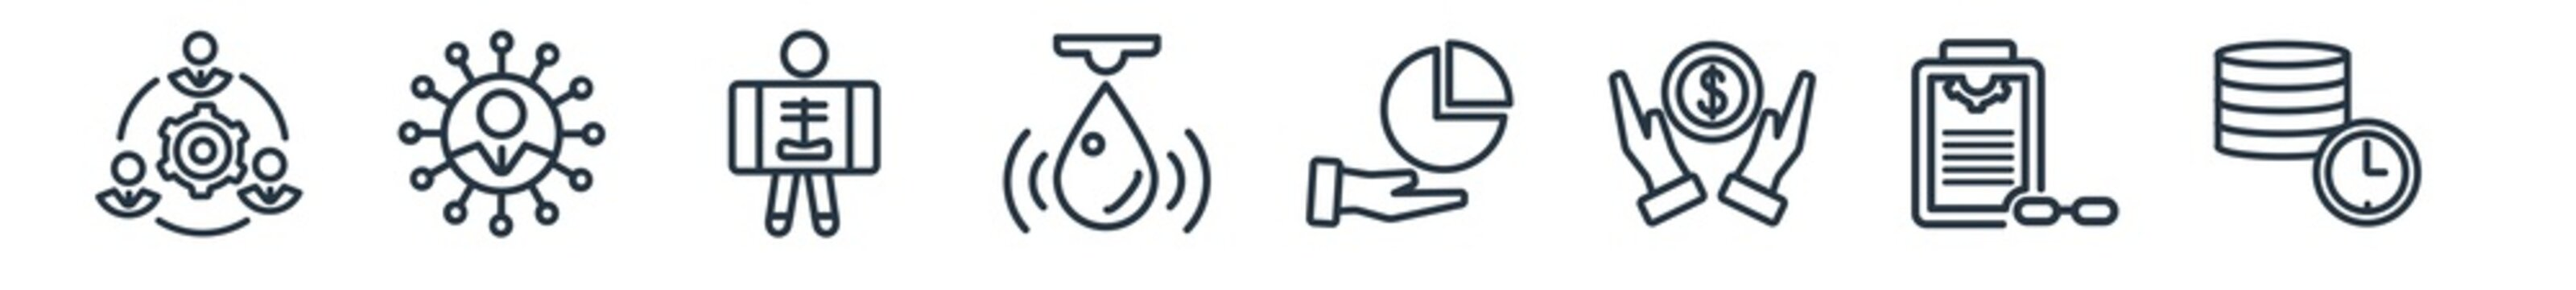 linear set of general outline icons. line vector icons such as project team, team leader, x-ray, water sensor, market share, real time data vector illustration.